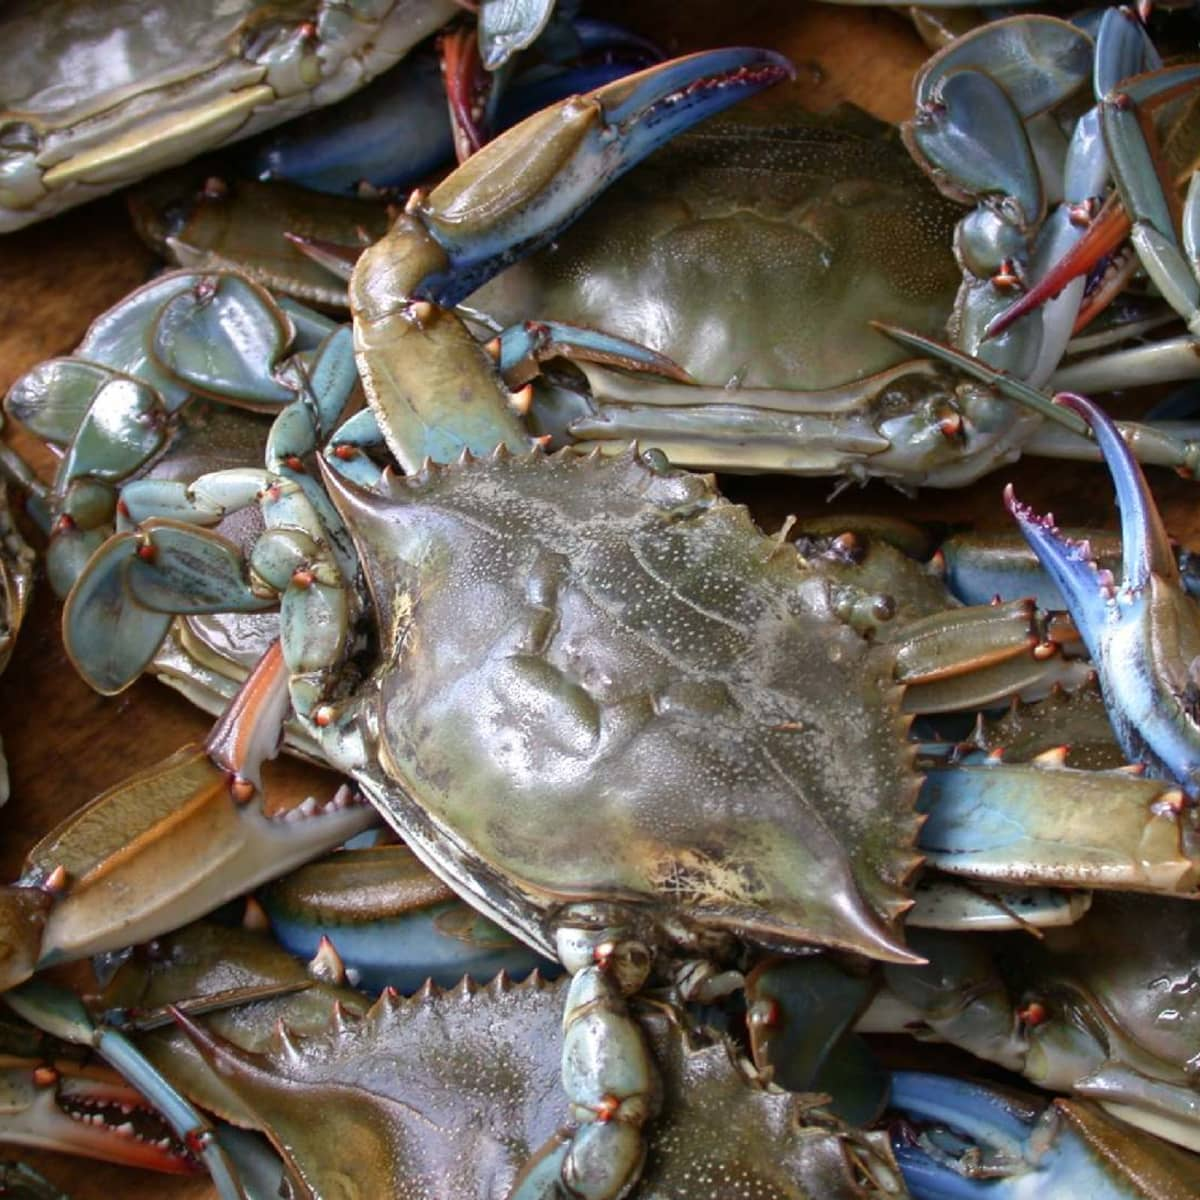 How To Catch Blue Crabs Skyaboveus Outdoors